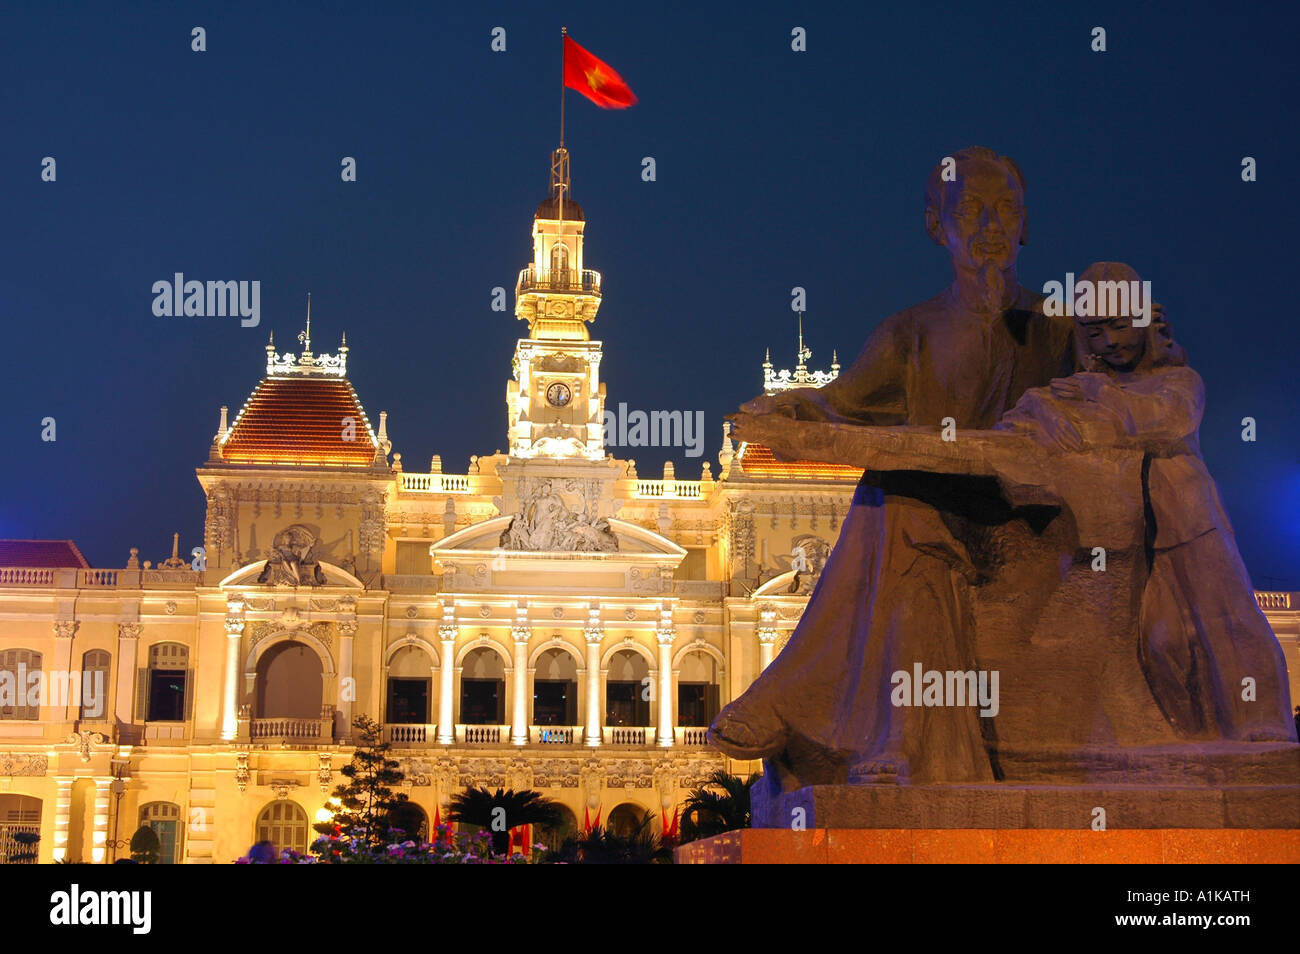 Monument of President Ho Chi Minh in front of the city's People's Committee Building Ho Chi Minh City Saigon - Stock Image